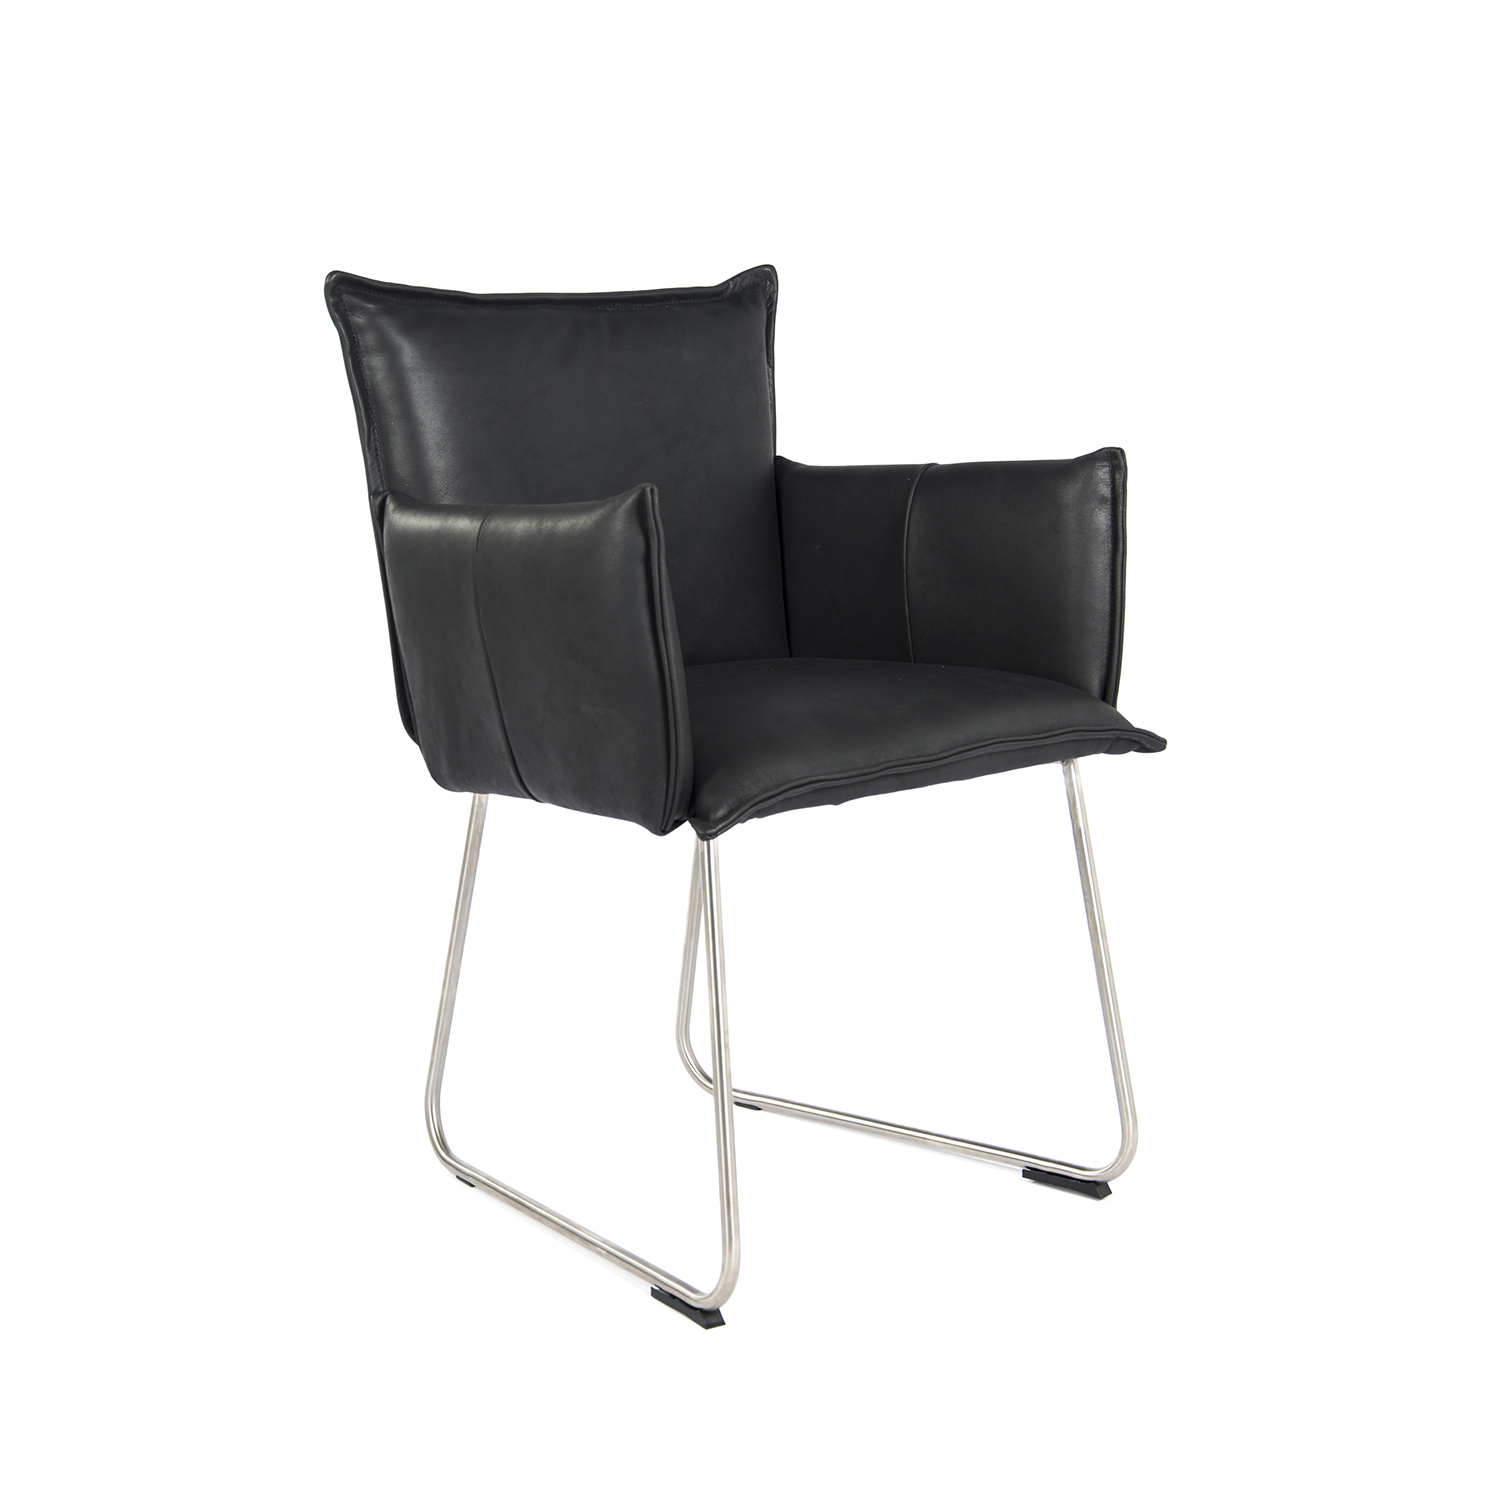 Duke Dining Chair With Arm Stainless Steel Bonanza Black Oblique (1)